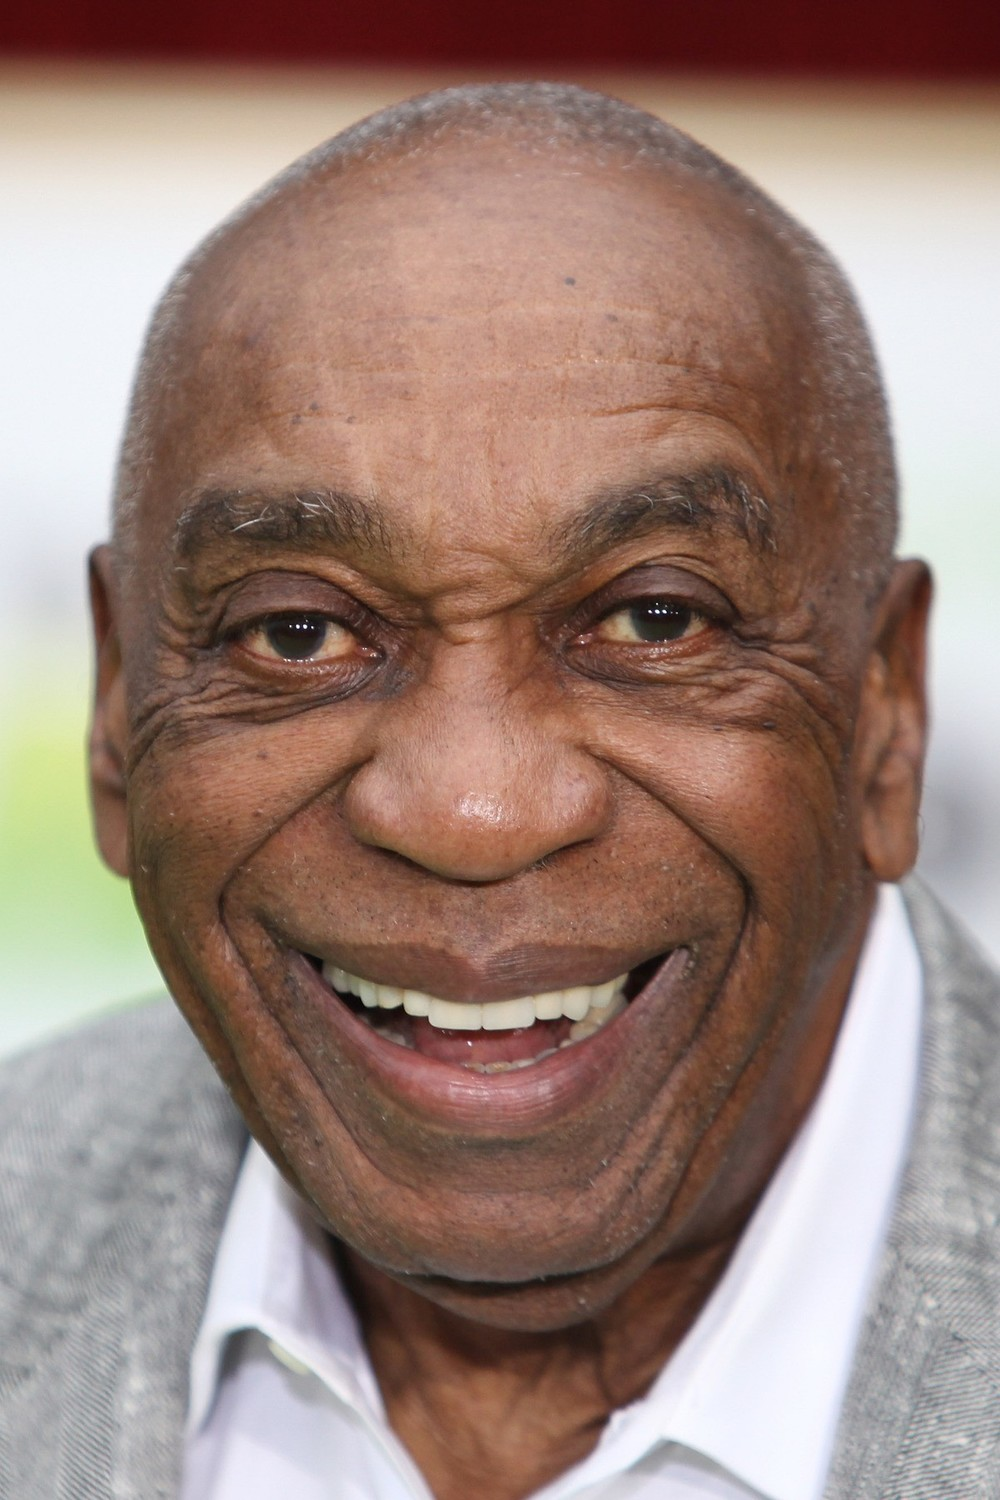 File:Bill Cobbs.jpg